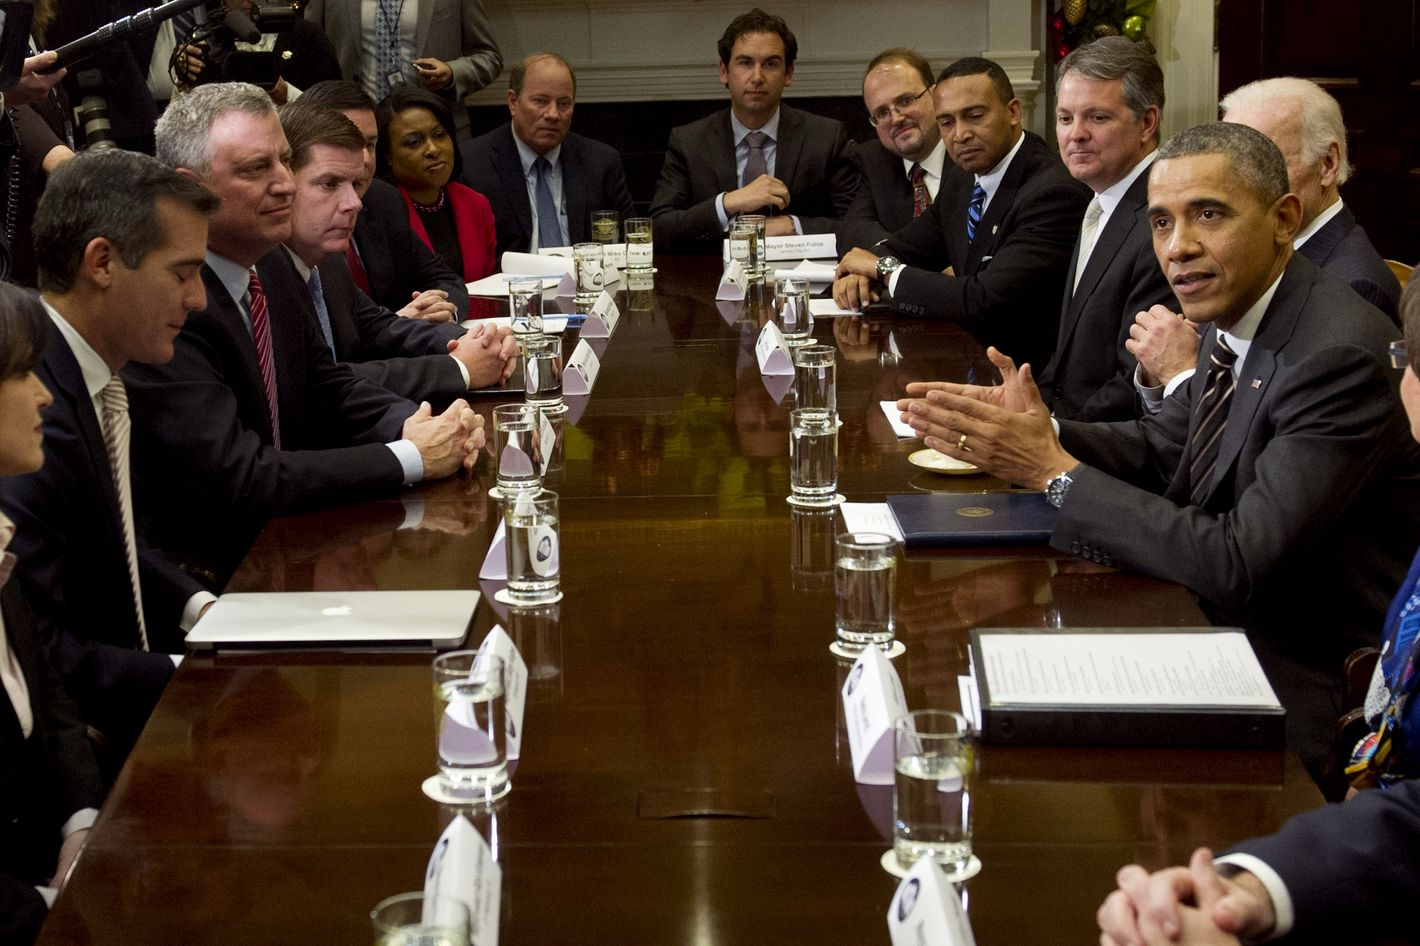 US President Barack Obama speaks during a meeting with a group of newly-elected mayors from across the US in the Roosevelt Room at the White House in Washington, DC, December 13, 2013.